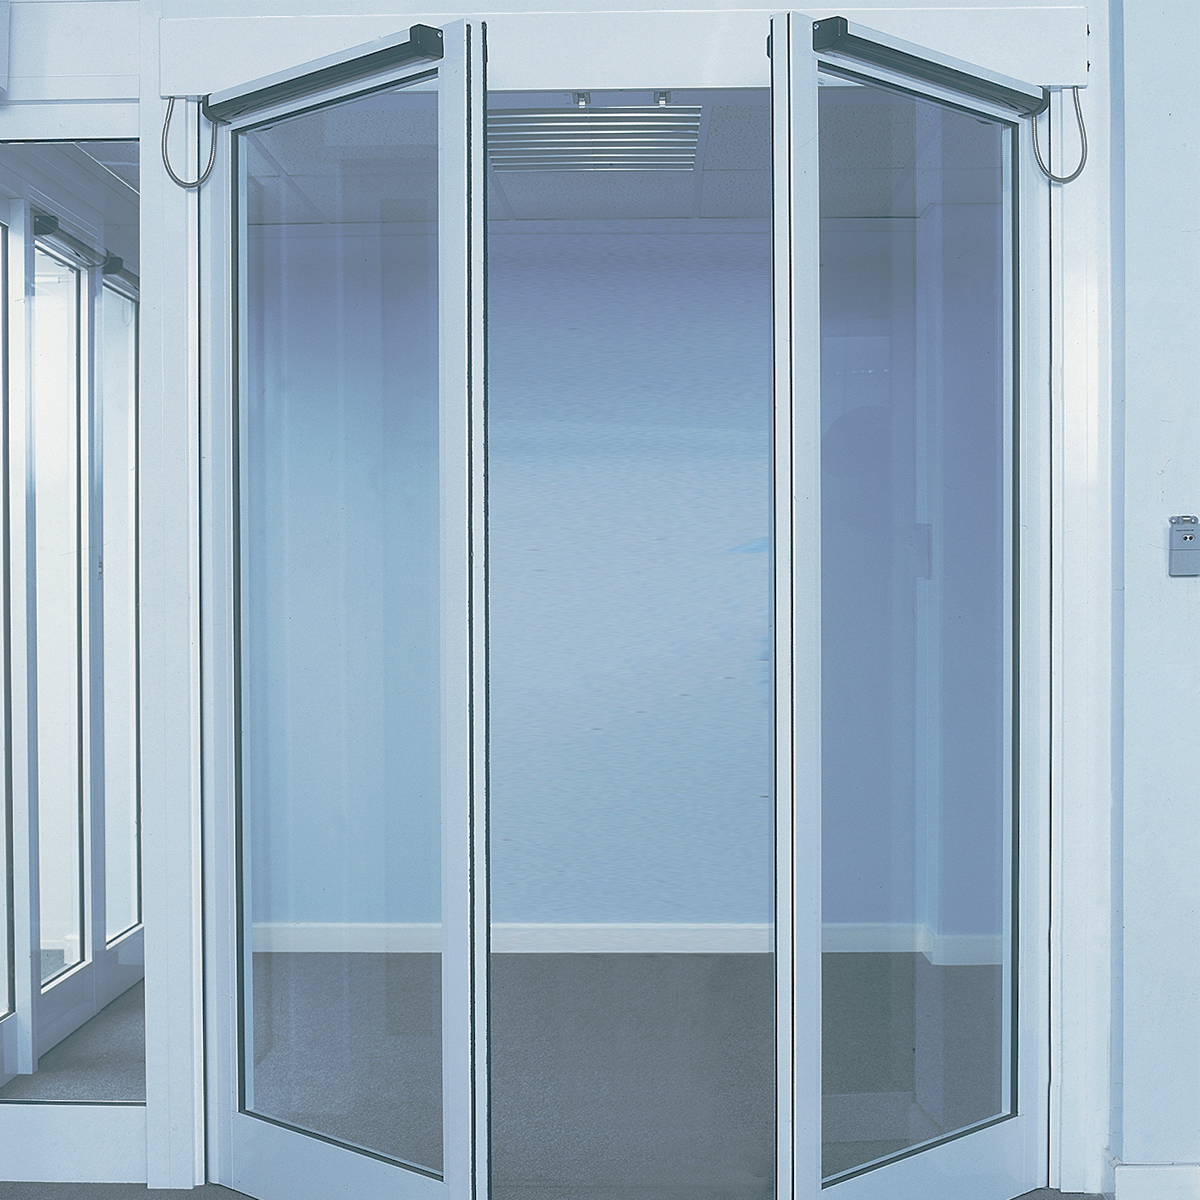 Swing Door - vawindowrepair.com